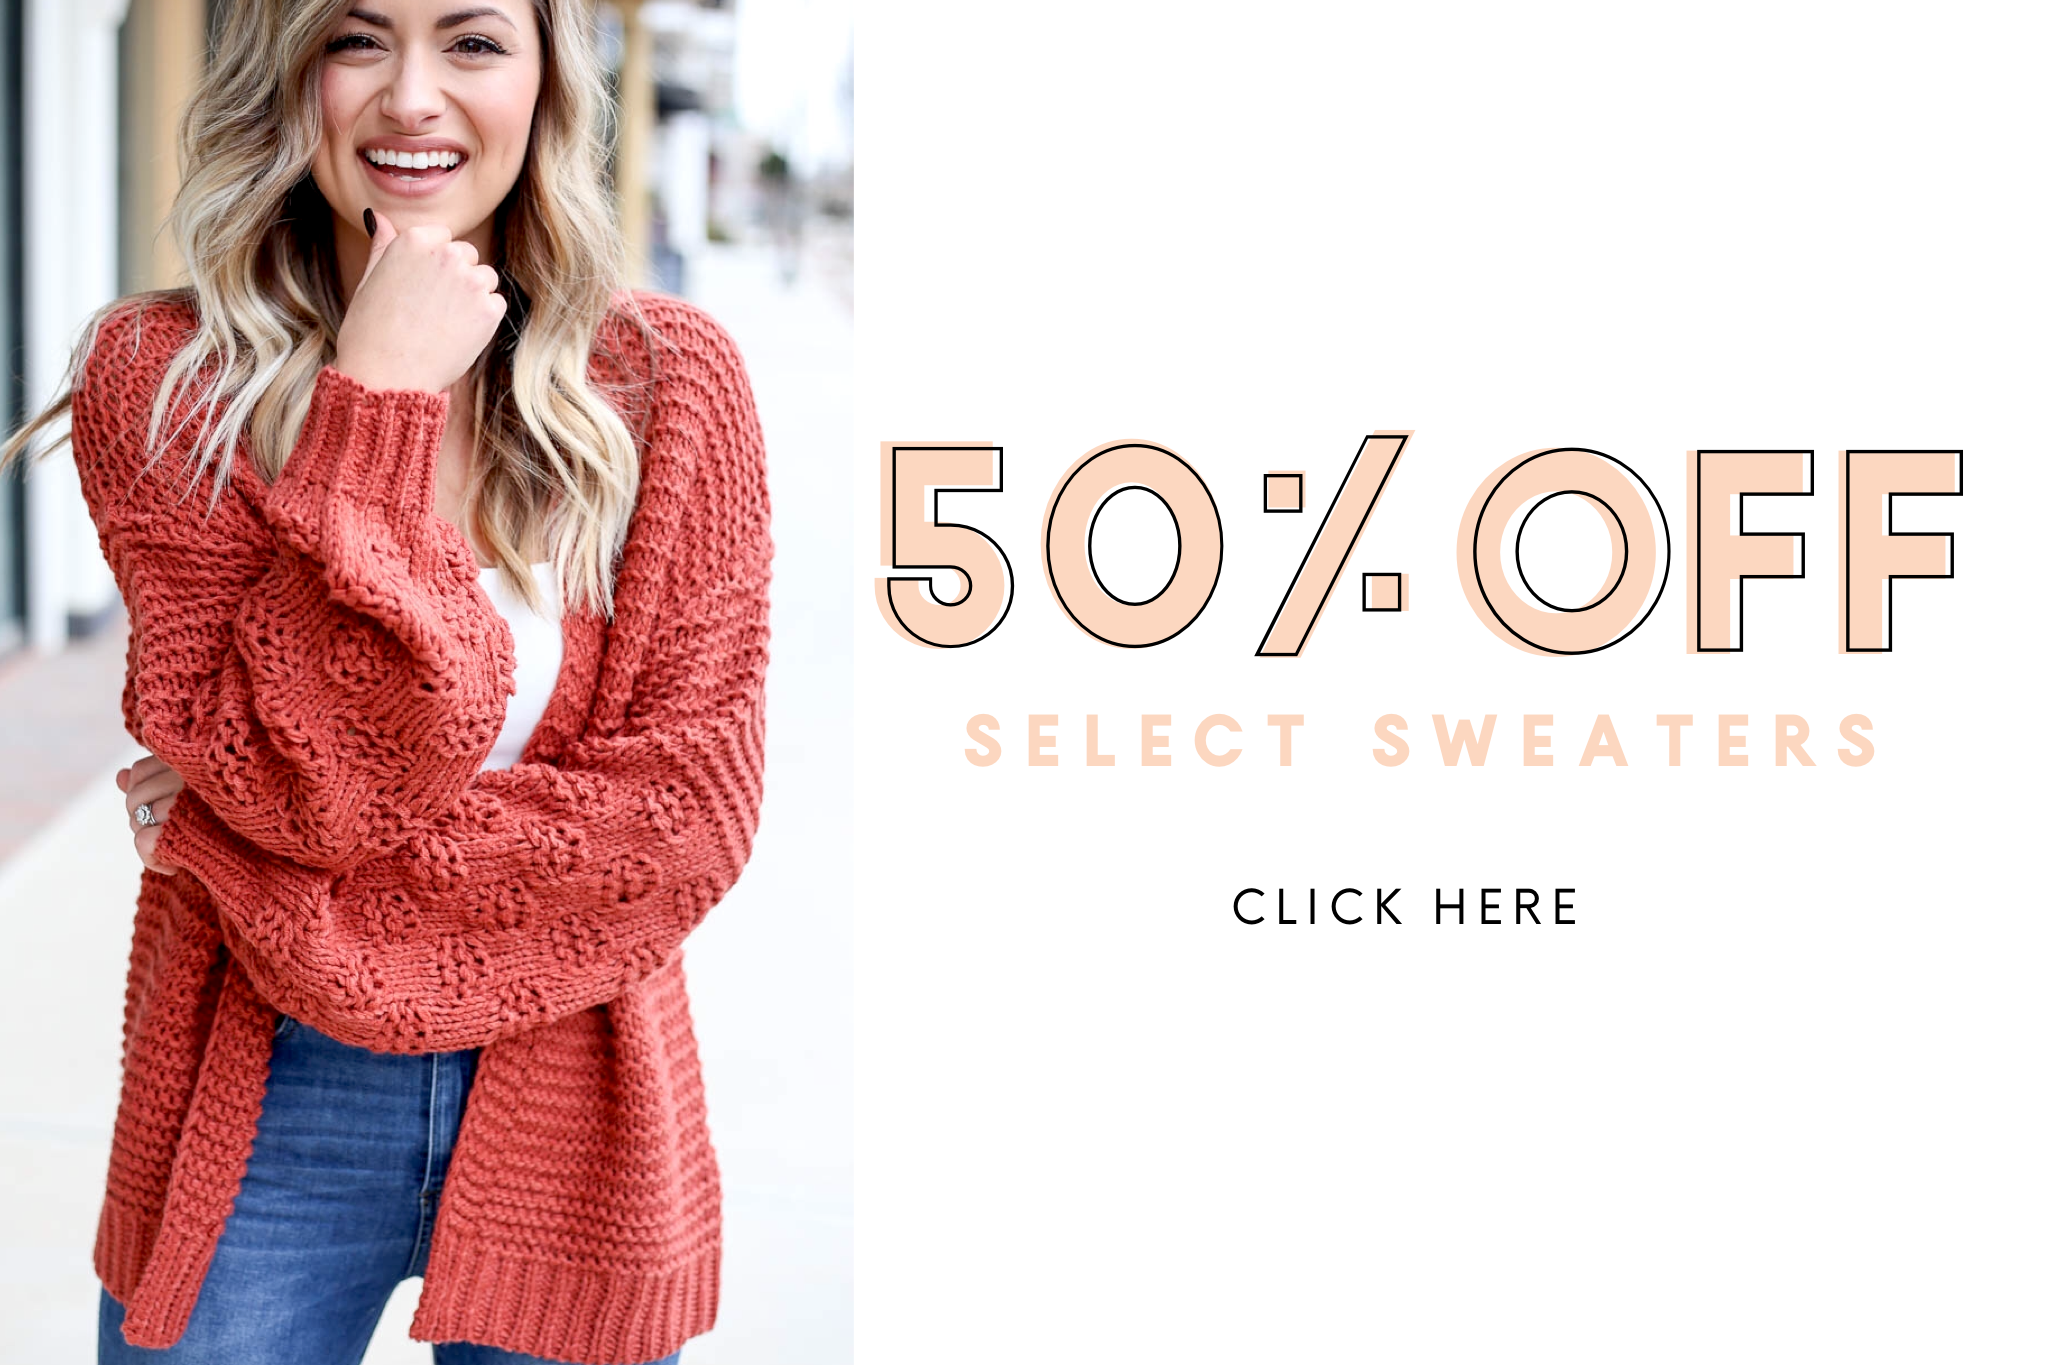 50% off select sweaters now!